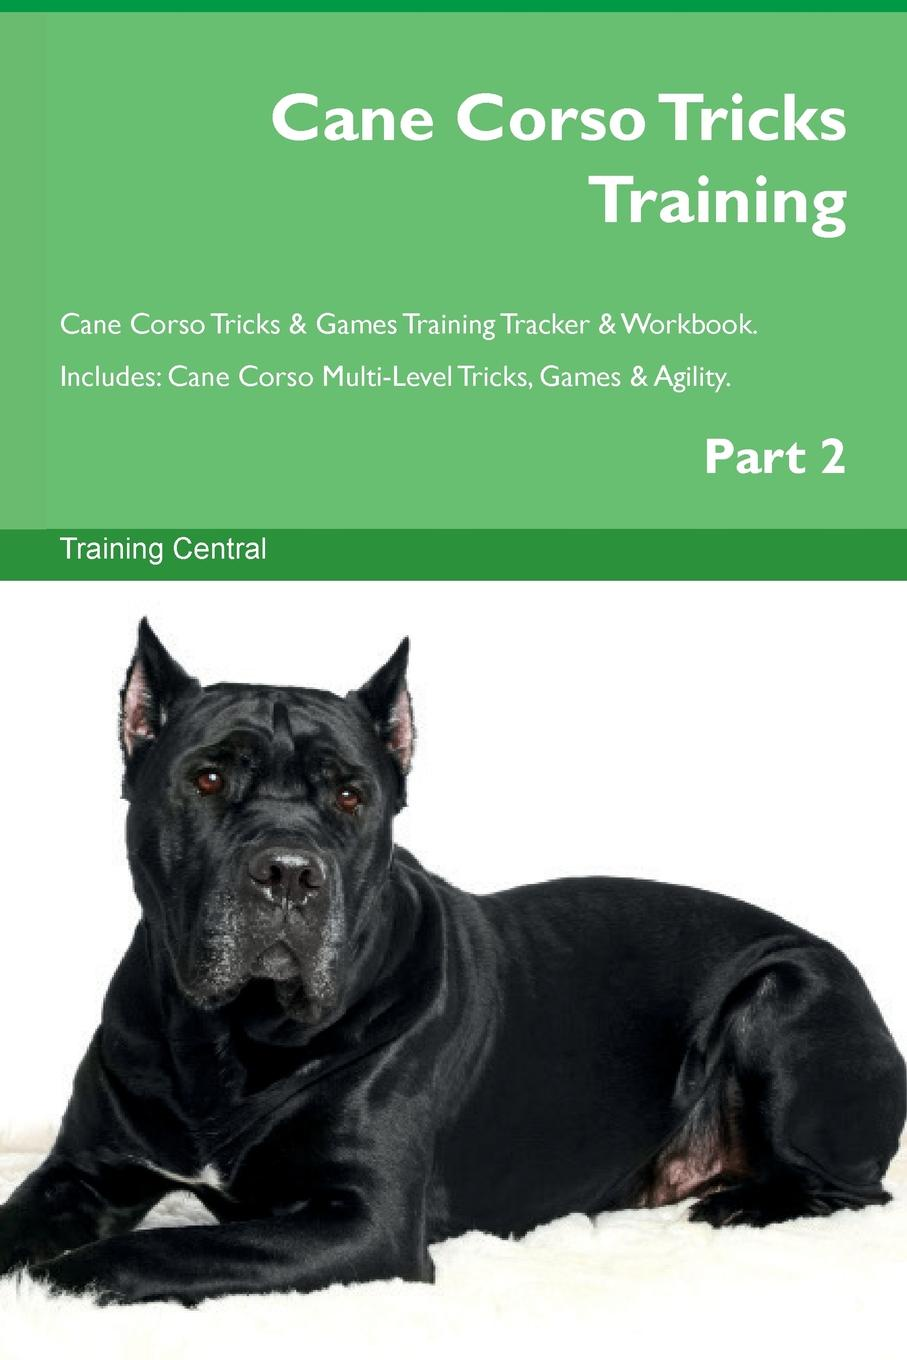 Training Central Cane Corso Tricks Training Cane Corso Tricks . Games Training Tracker . Workbook. Includes. Cane Corso Multi-Level Tricks, Games . Agility. Part 2 this book loves you